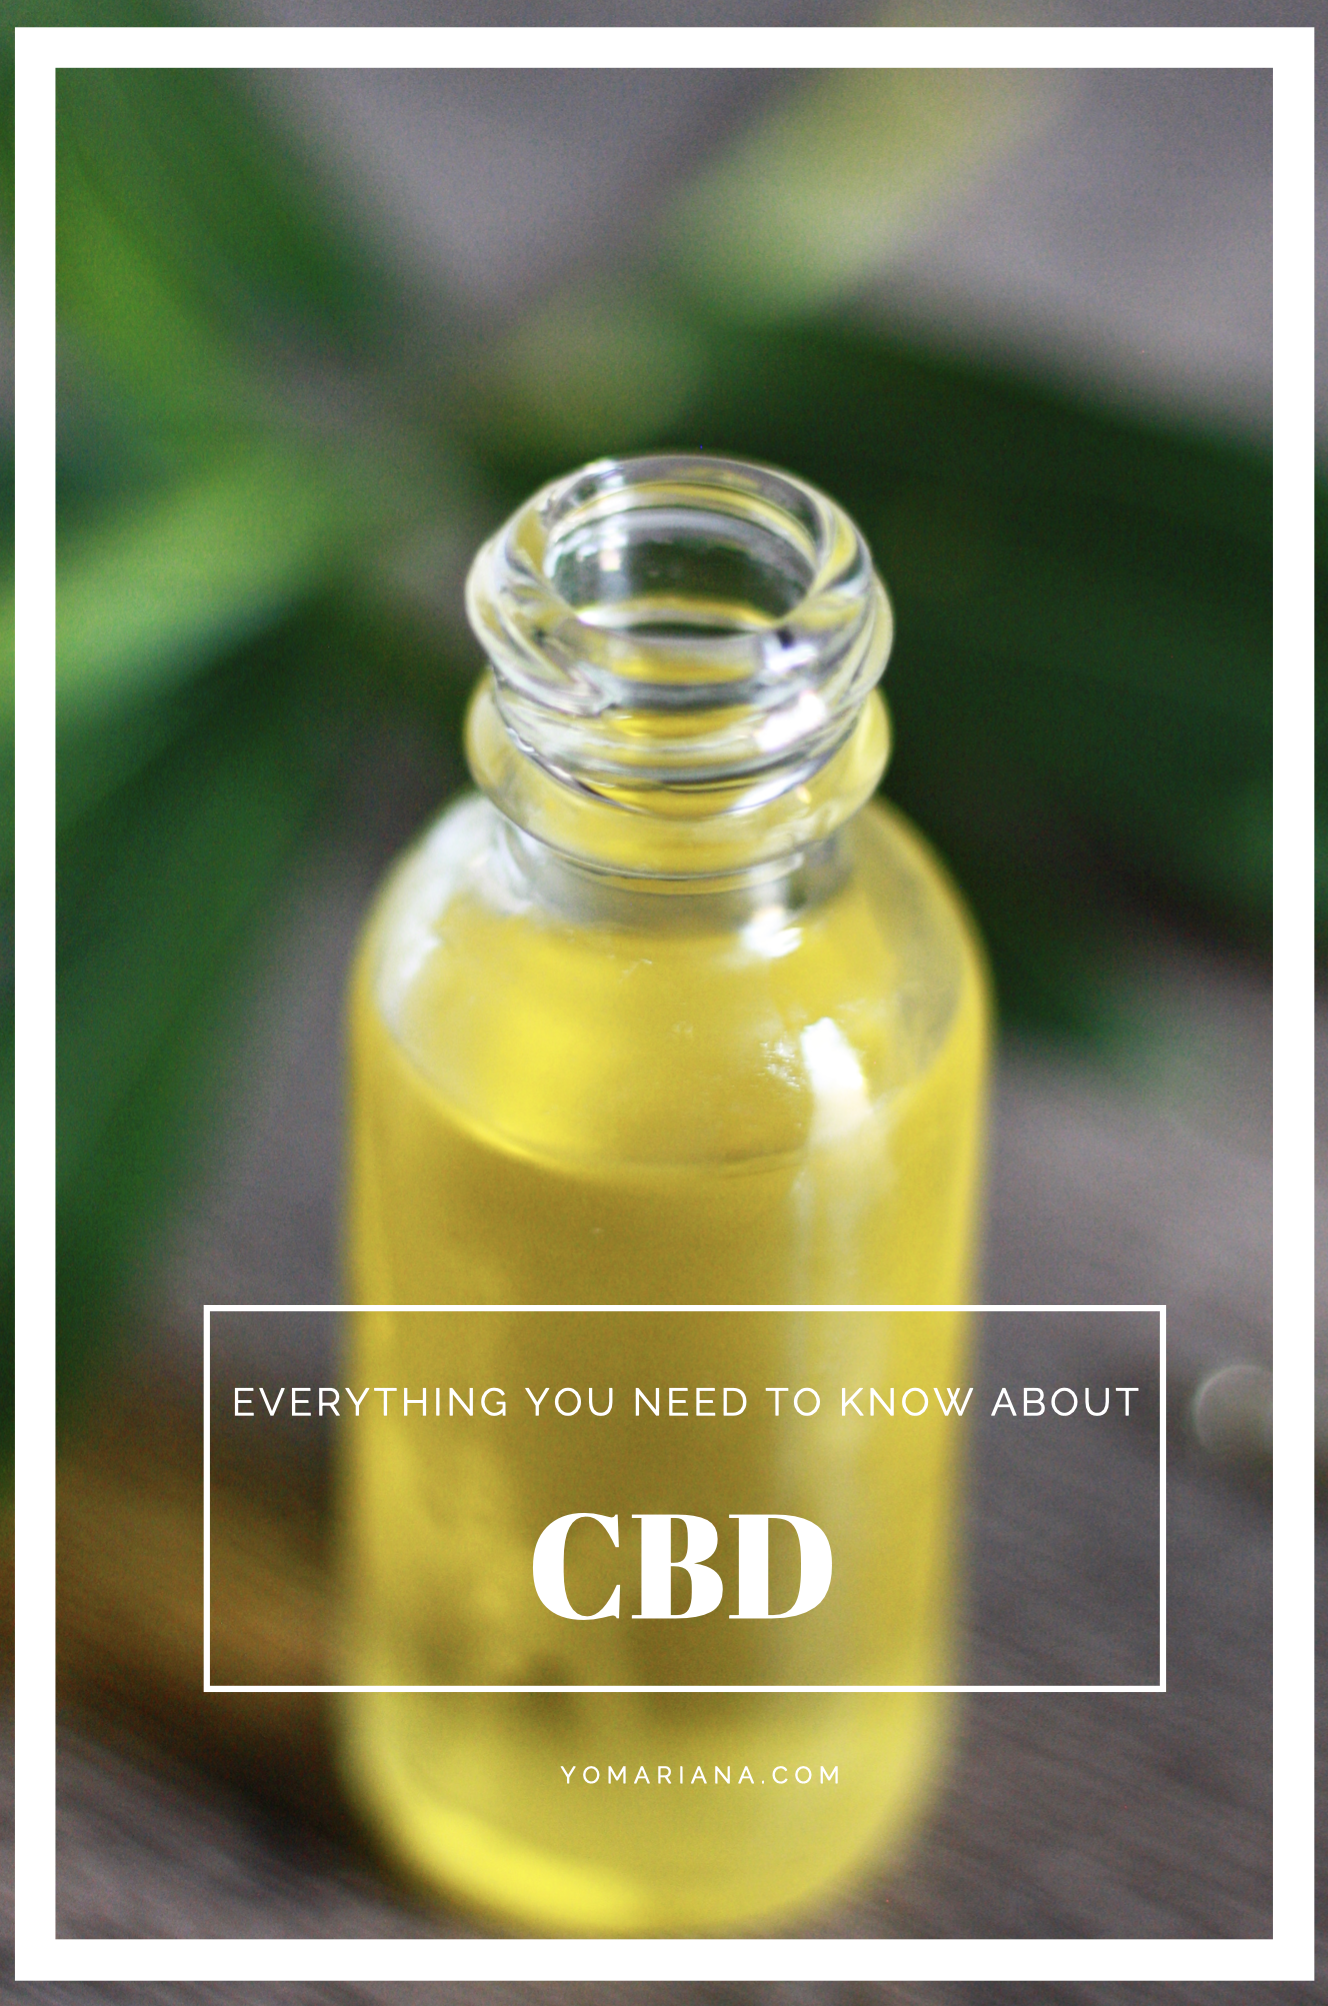 Everything you need to know about CBD at yomariana.com.png